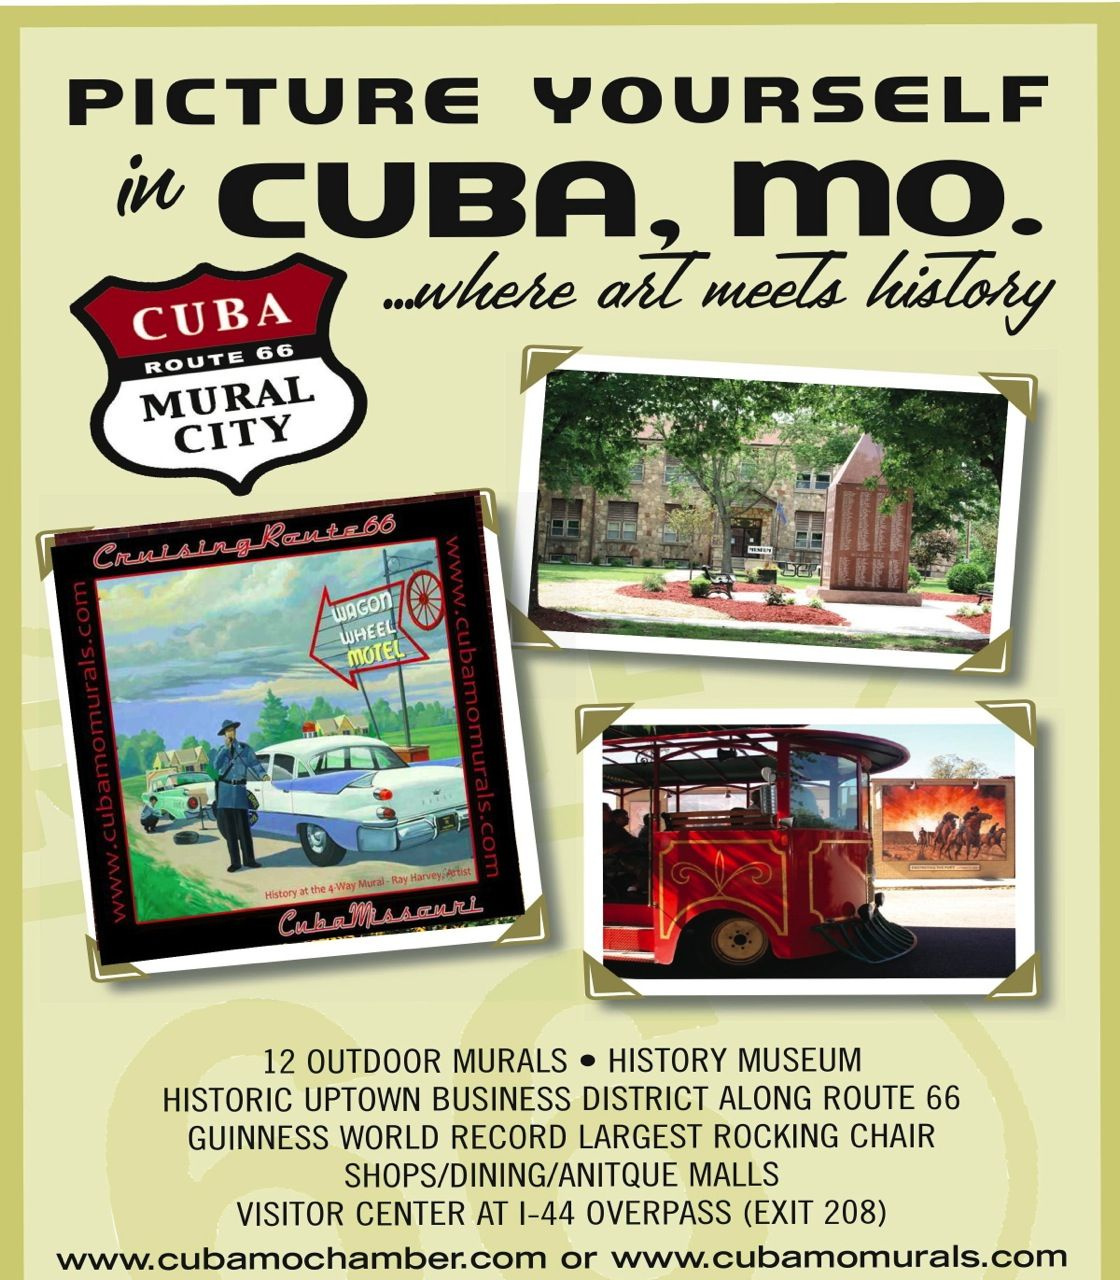 Cuba Mo Founded In 1857 Is A Small Route 66 Town With An